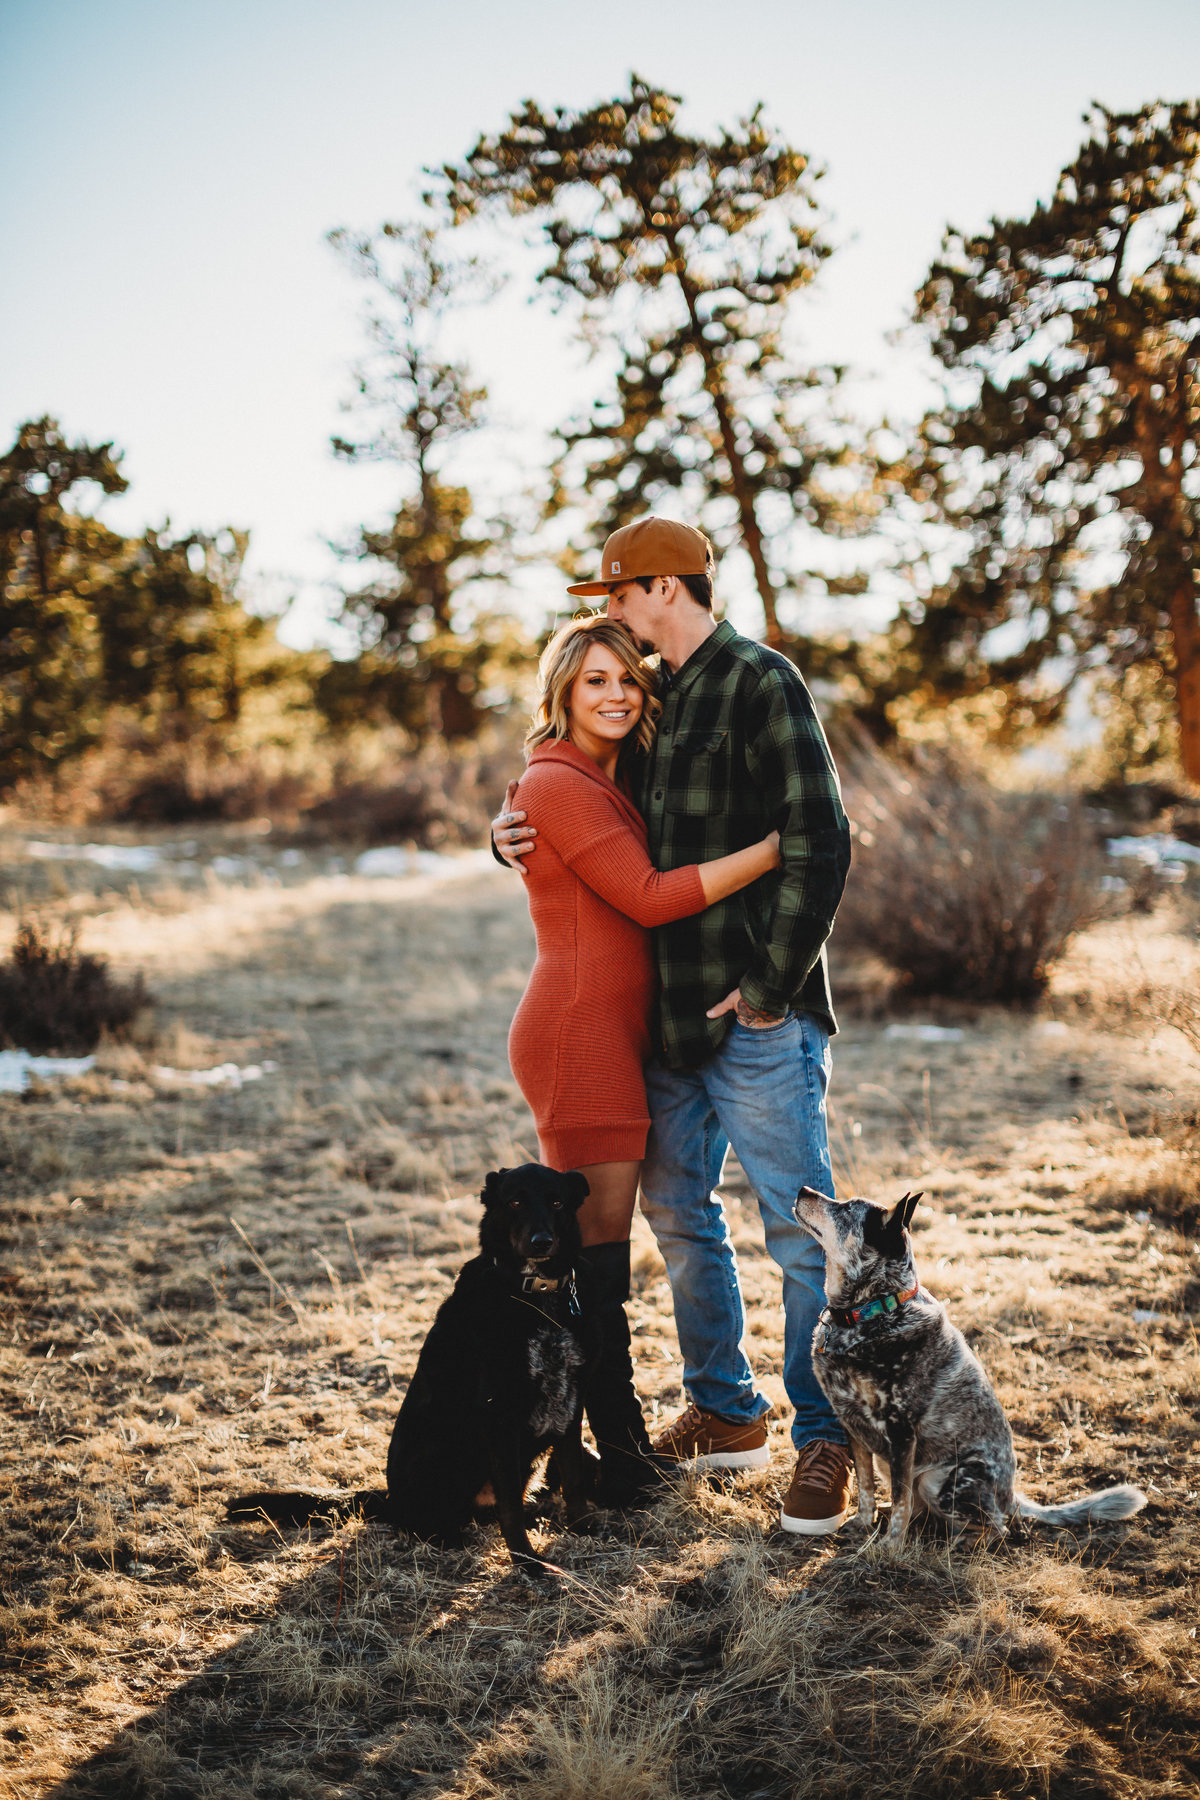 Engagement photo with dogs in Estes Park, Colorado